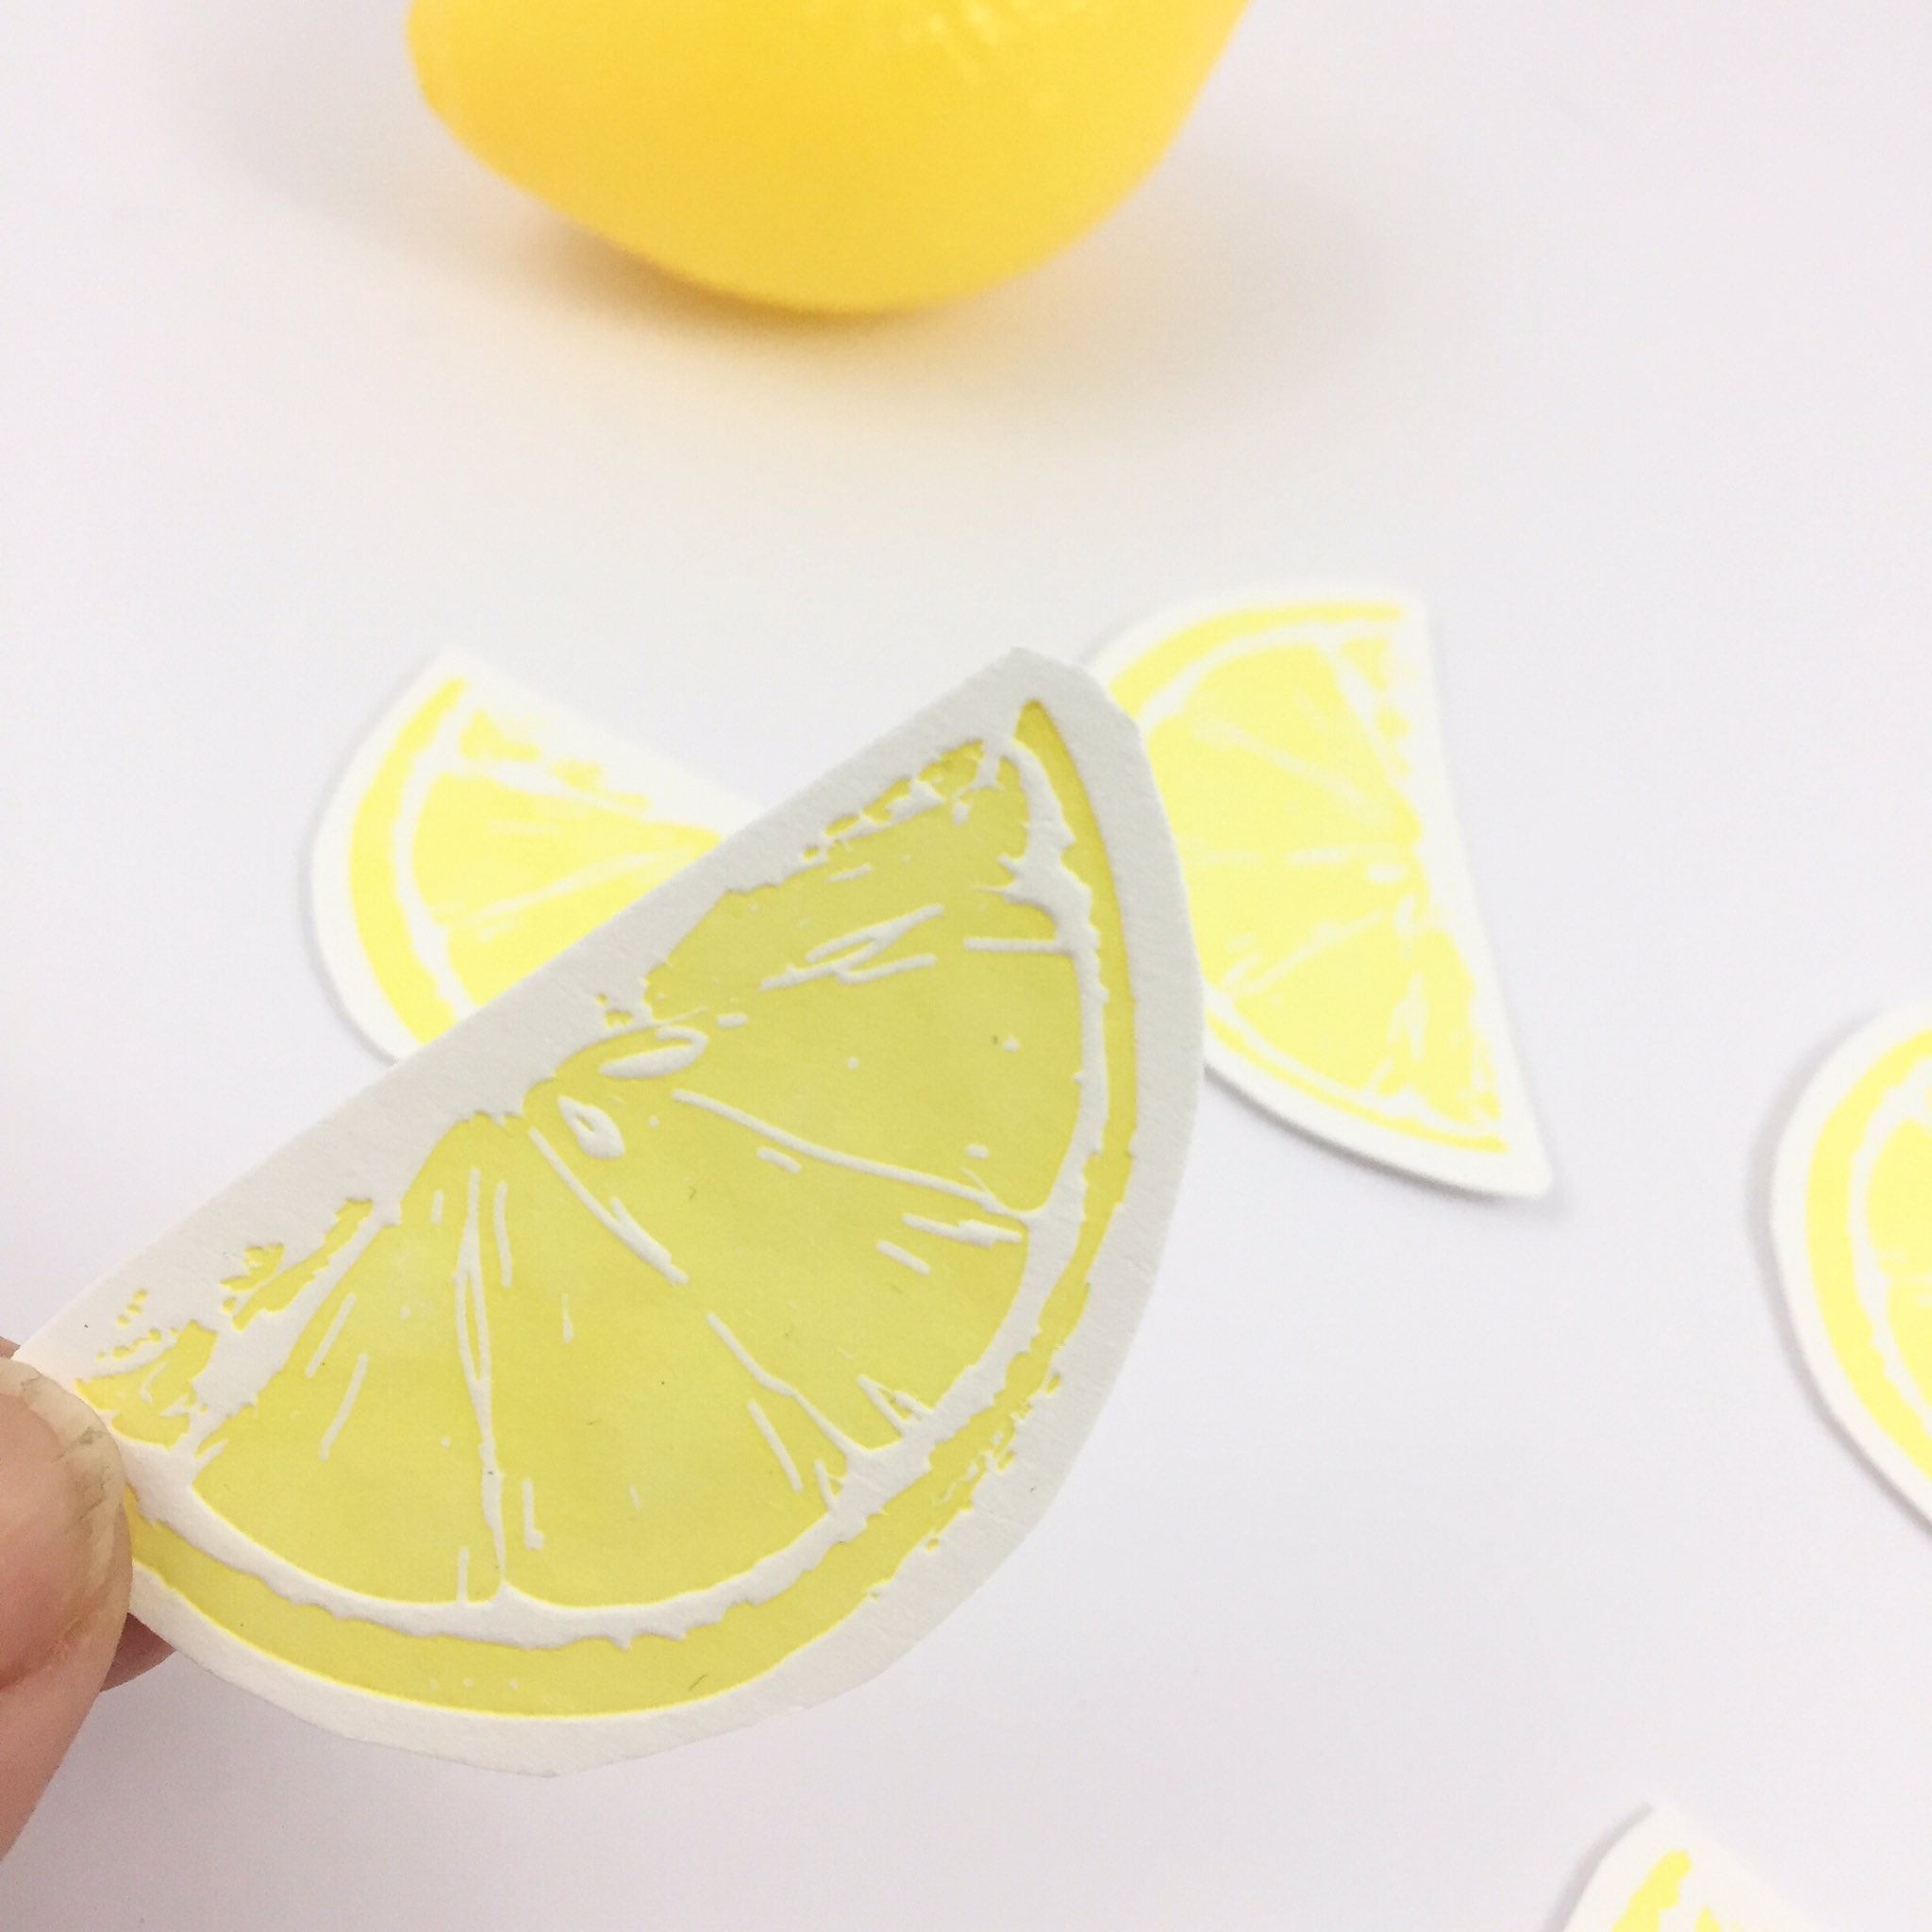 @folksy I'm busy pressing lemons for tonight's #folksyhour ... now just need to find that gin .... https://t.co/NAFxbIz5Zq